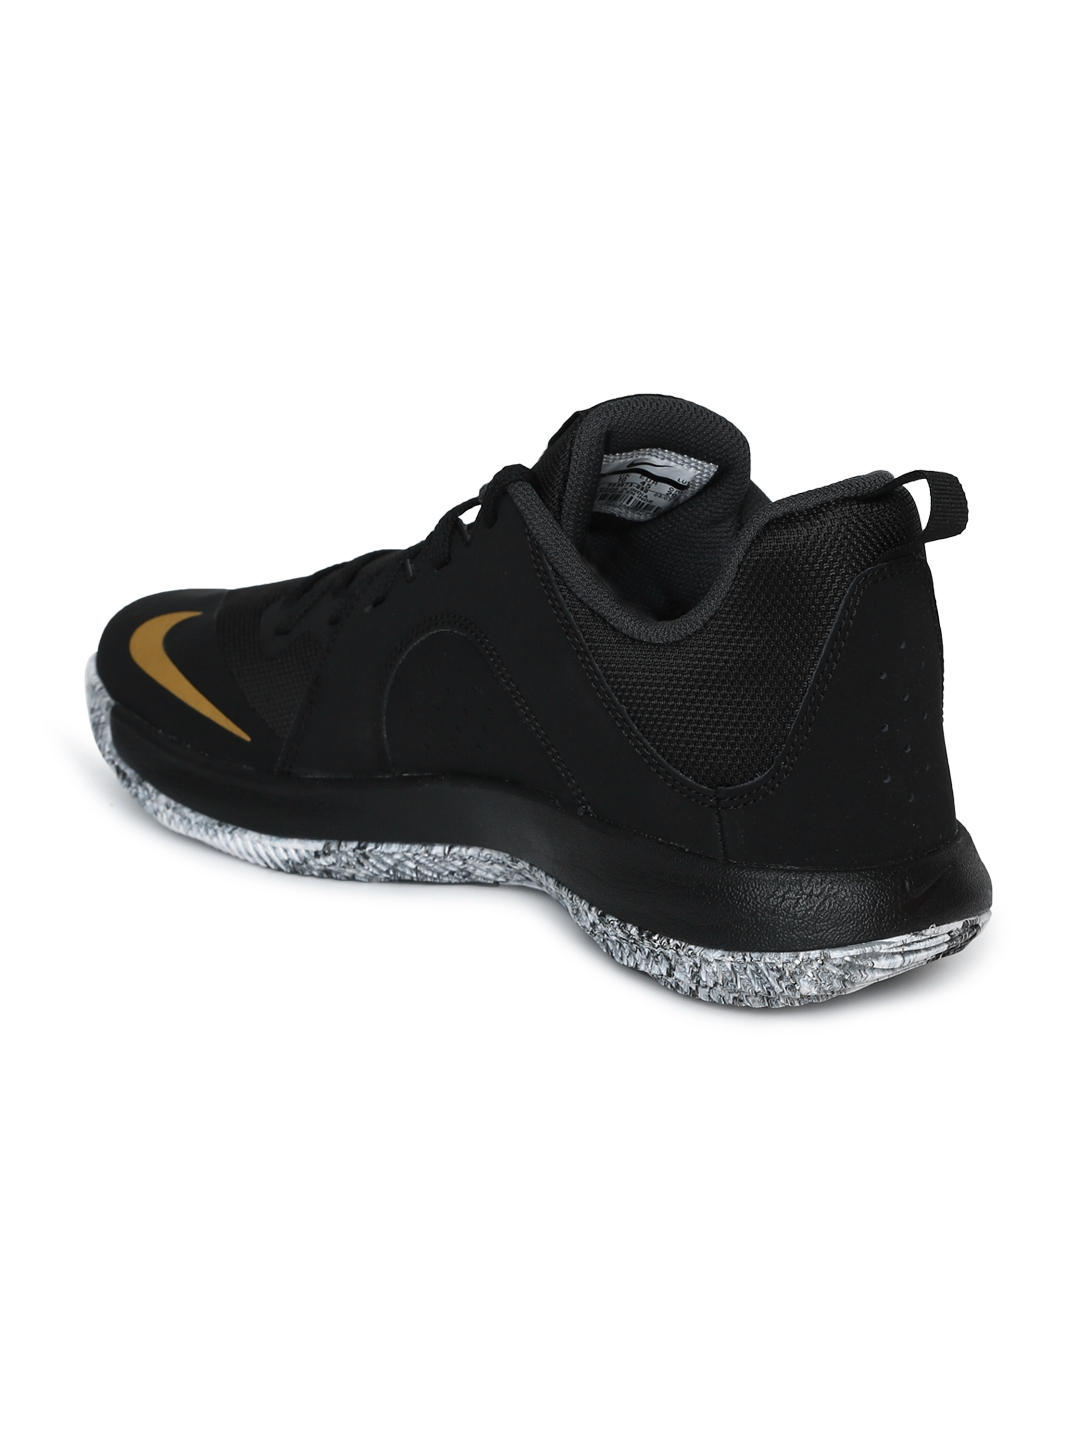 c1683b4a1d72 Buy Nike Men Black FLY BY LOW Basketball Shoes - Sports Shoes for ...